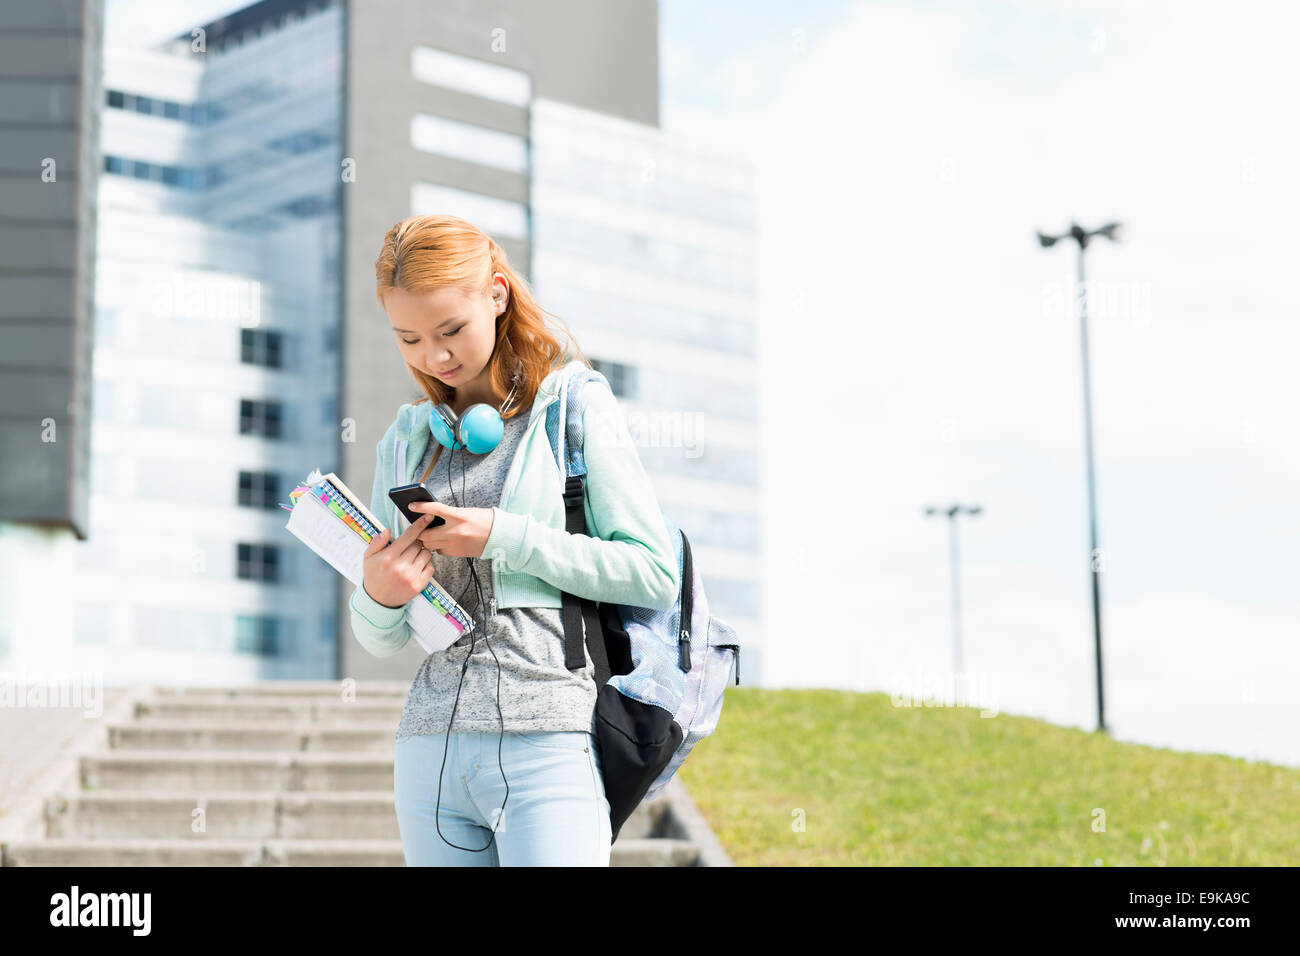 Young woman using smart phone at college campus Stock Photo